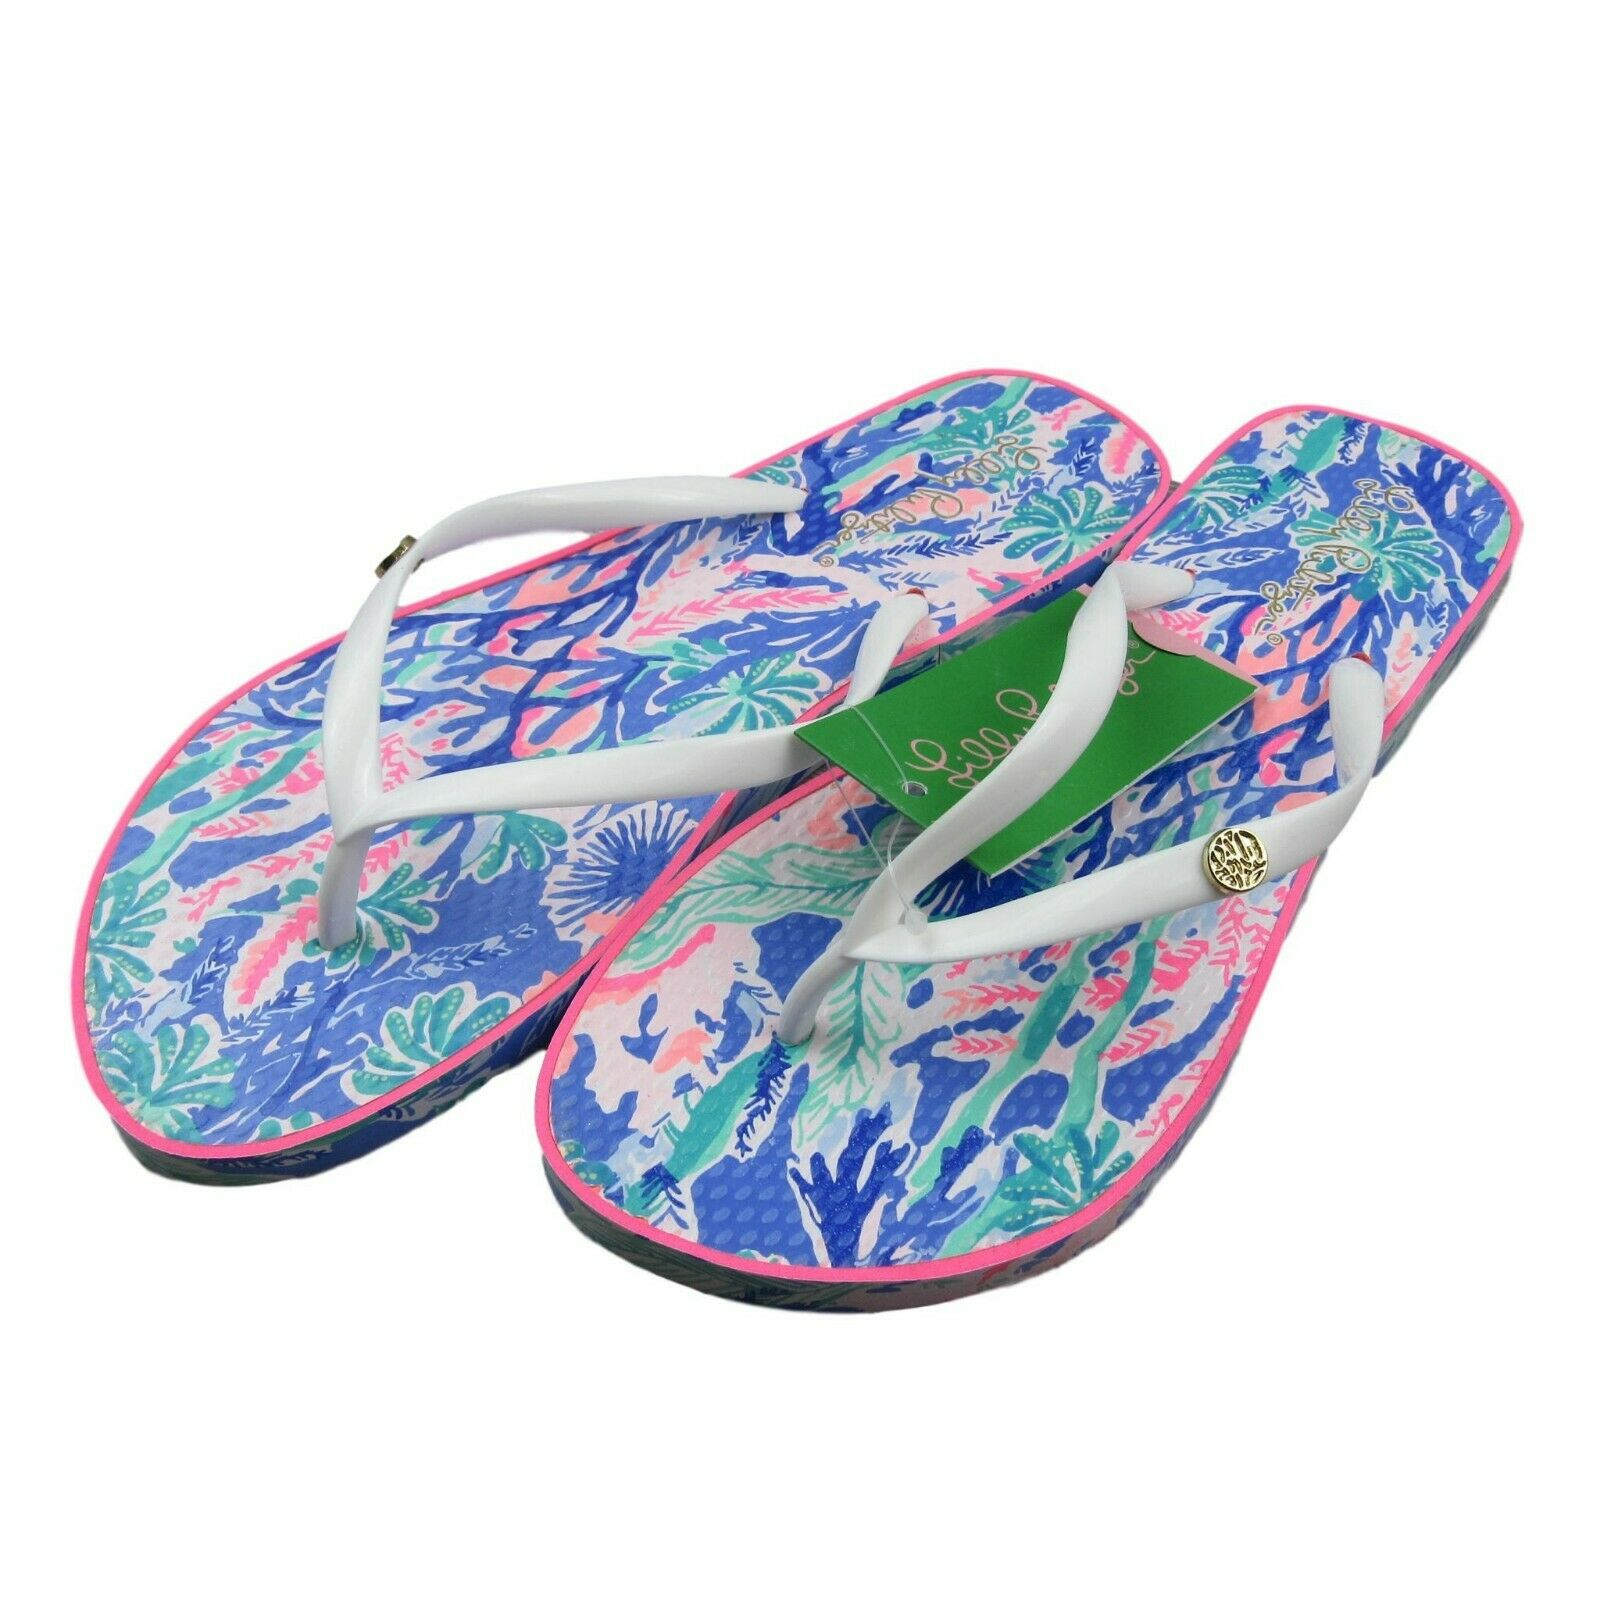 72ae60889b30 Lilly Pulitzer Pool Flip Flops Multi Color Jet Stream Size 7 8 ...